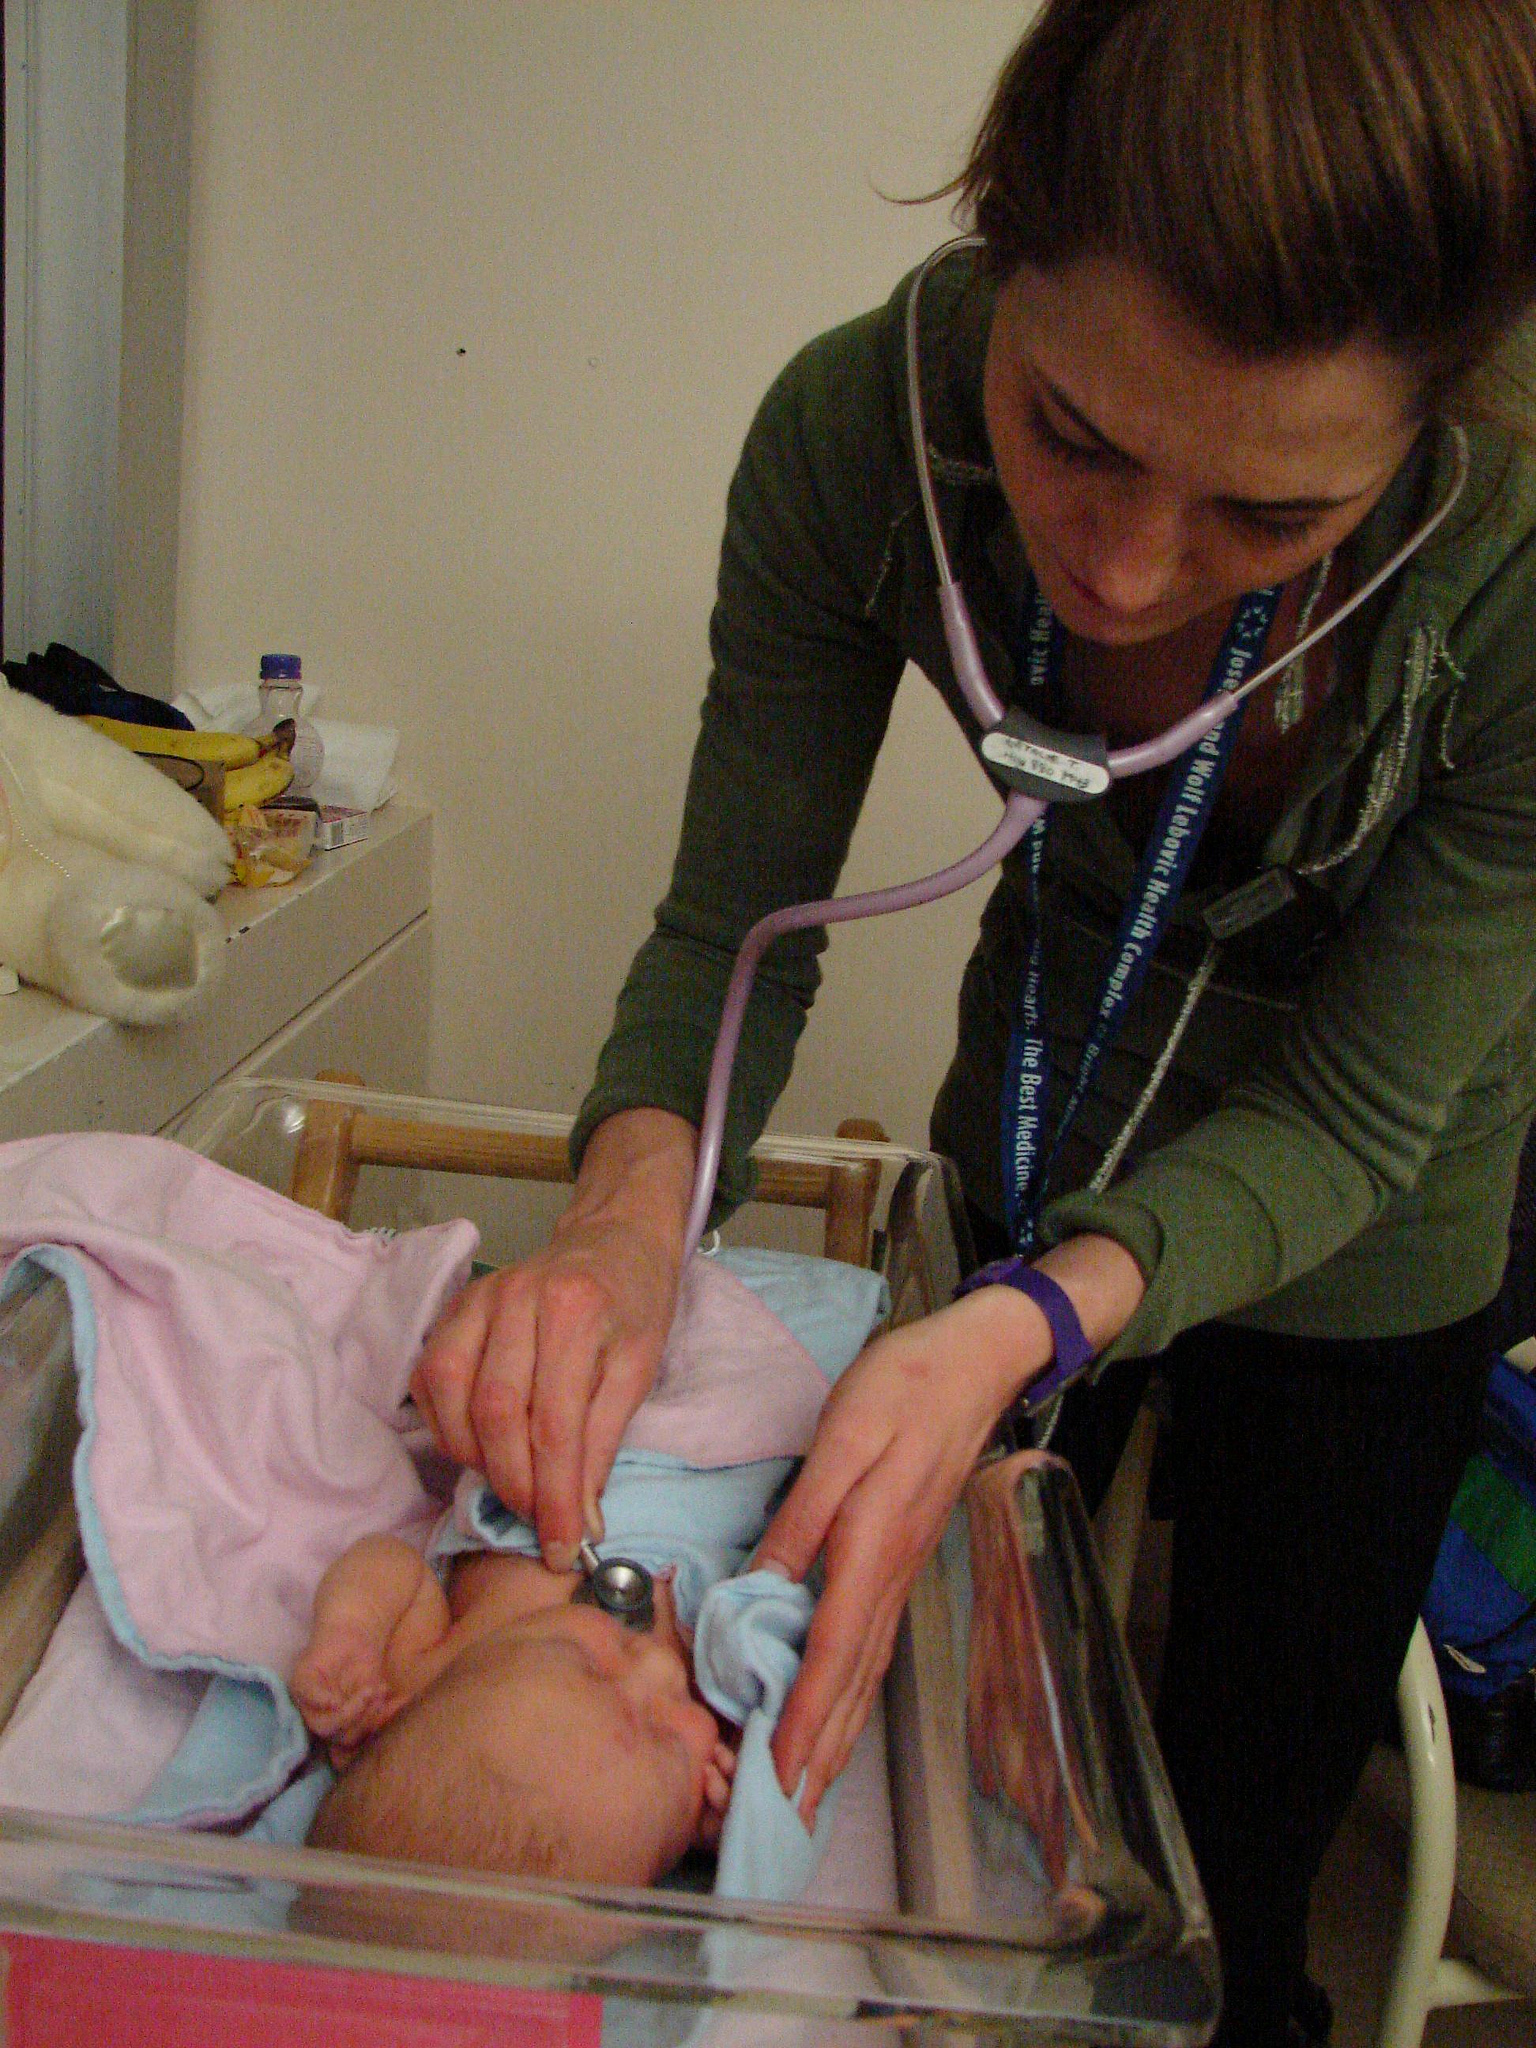 Midwife Caring for a Newborn, Photo by Jon Hayes